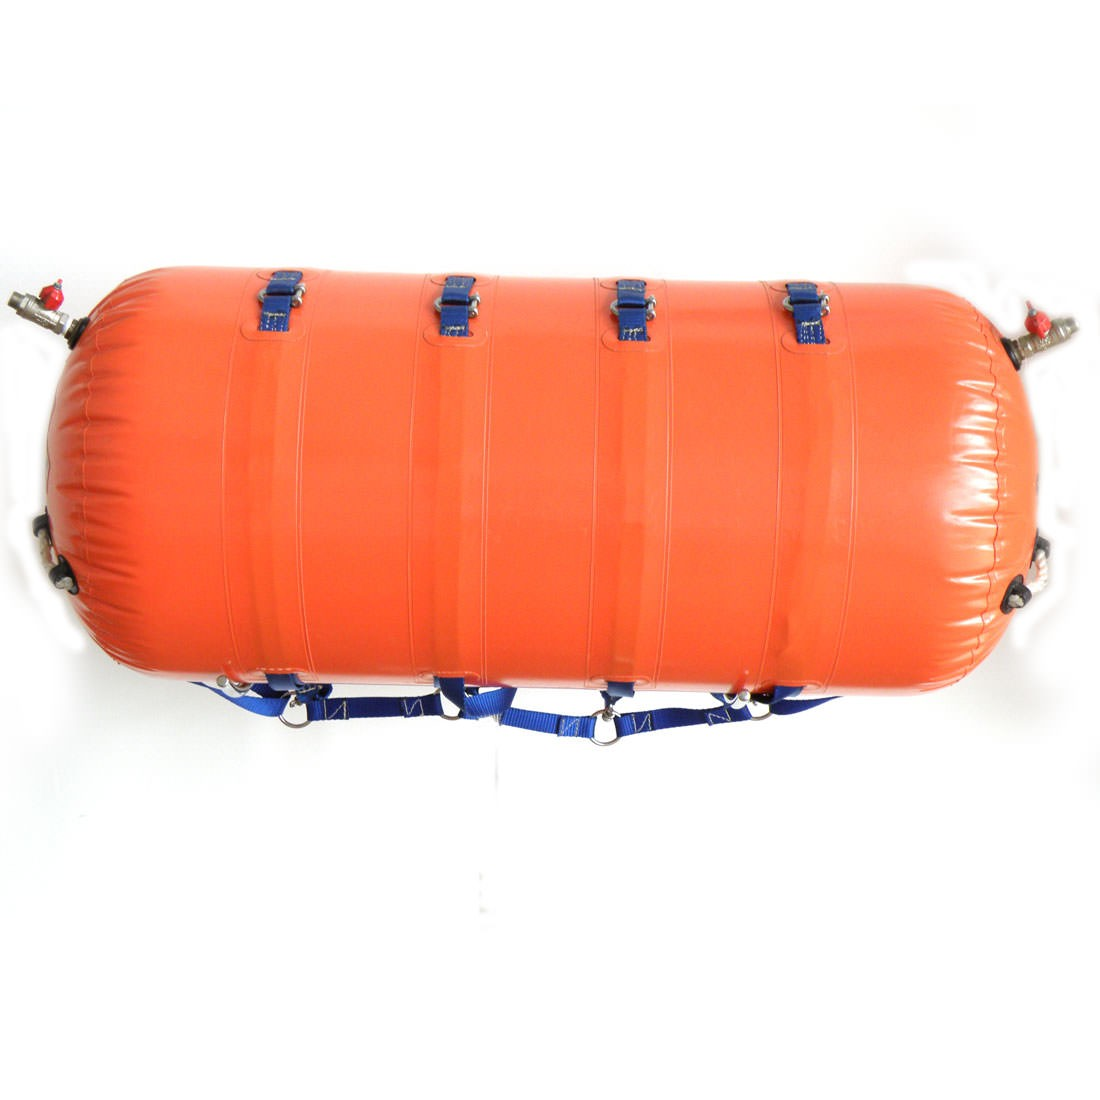 Seaflex 3 Ton Inflatable Buoyancy Unit